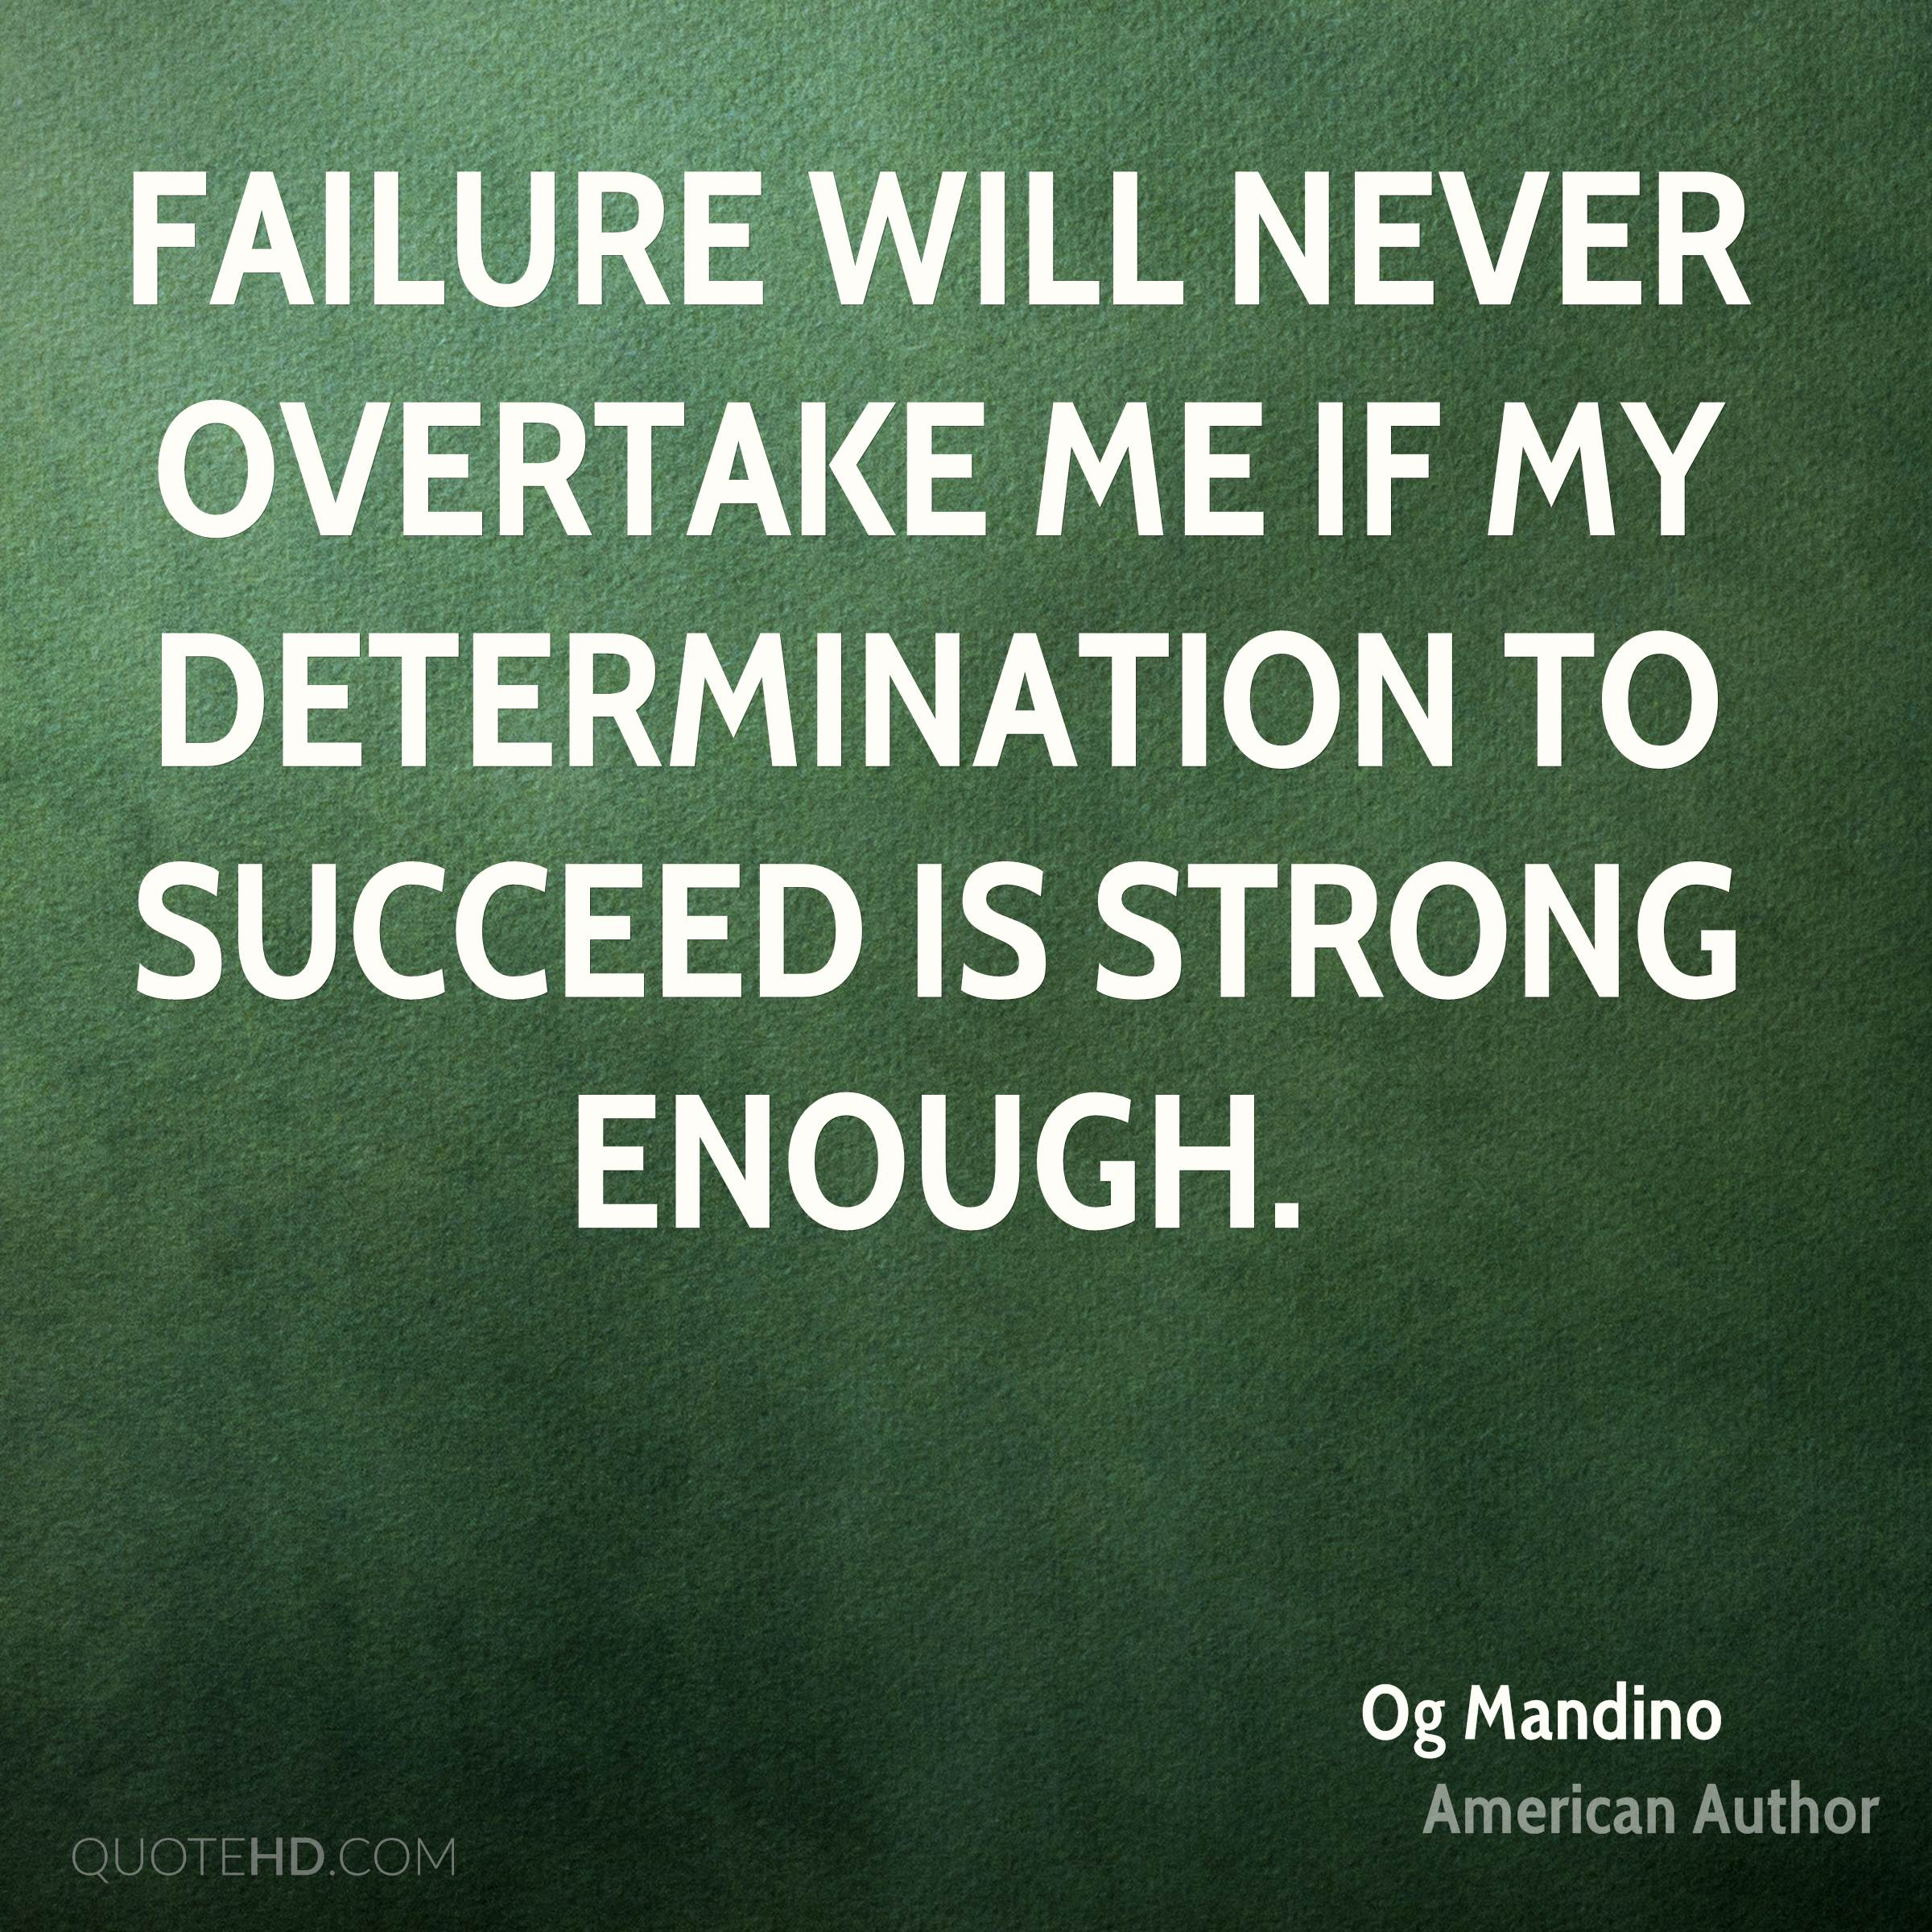 Inspirational Quotes About Failure: Og Mandino Quotes